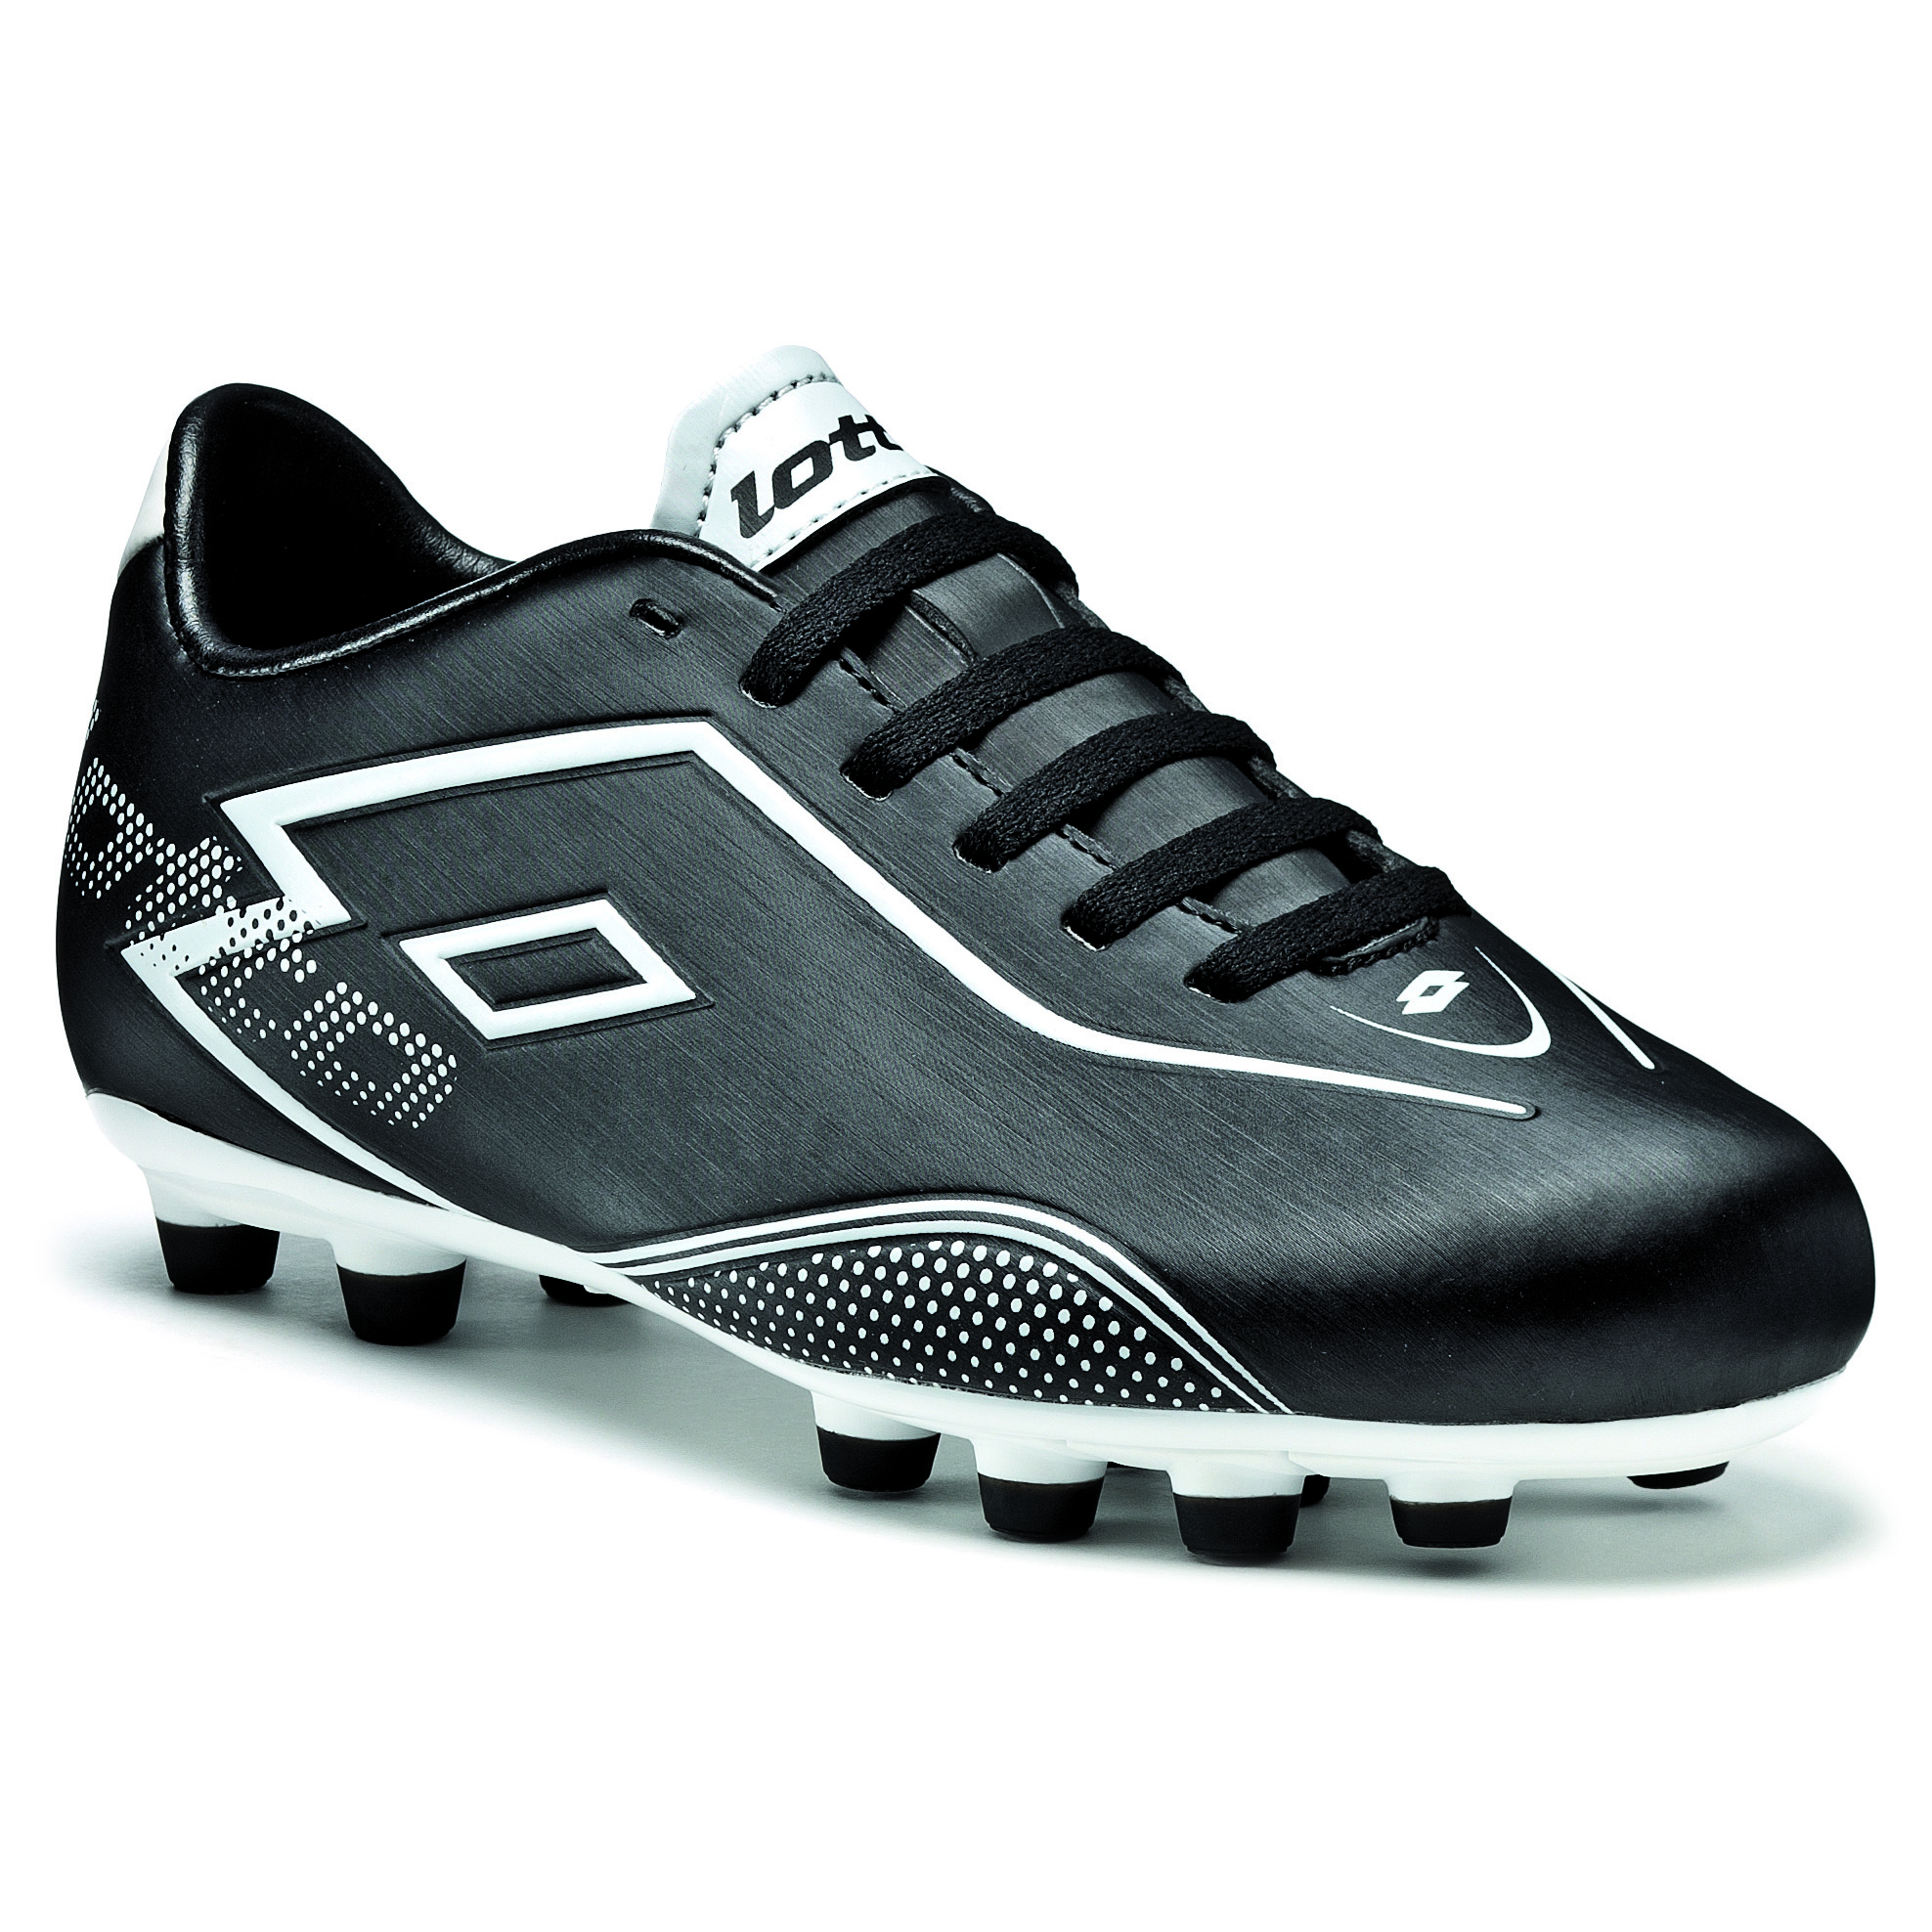 Lotto Zhero Gravity.II 700 Firm Ground Football Boots - Black/White - Kids